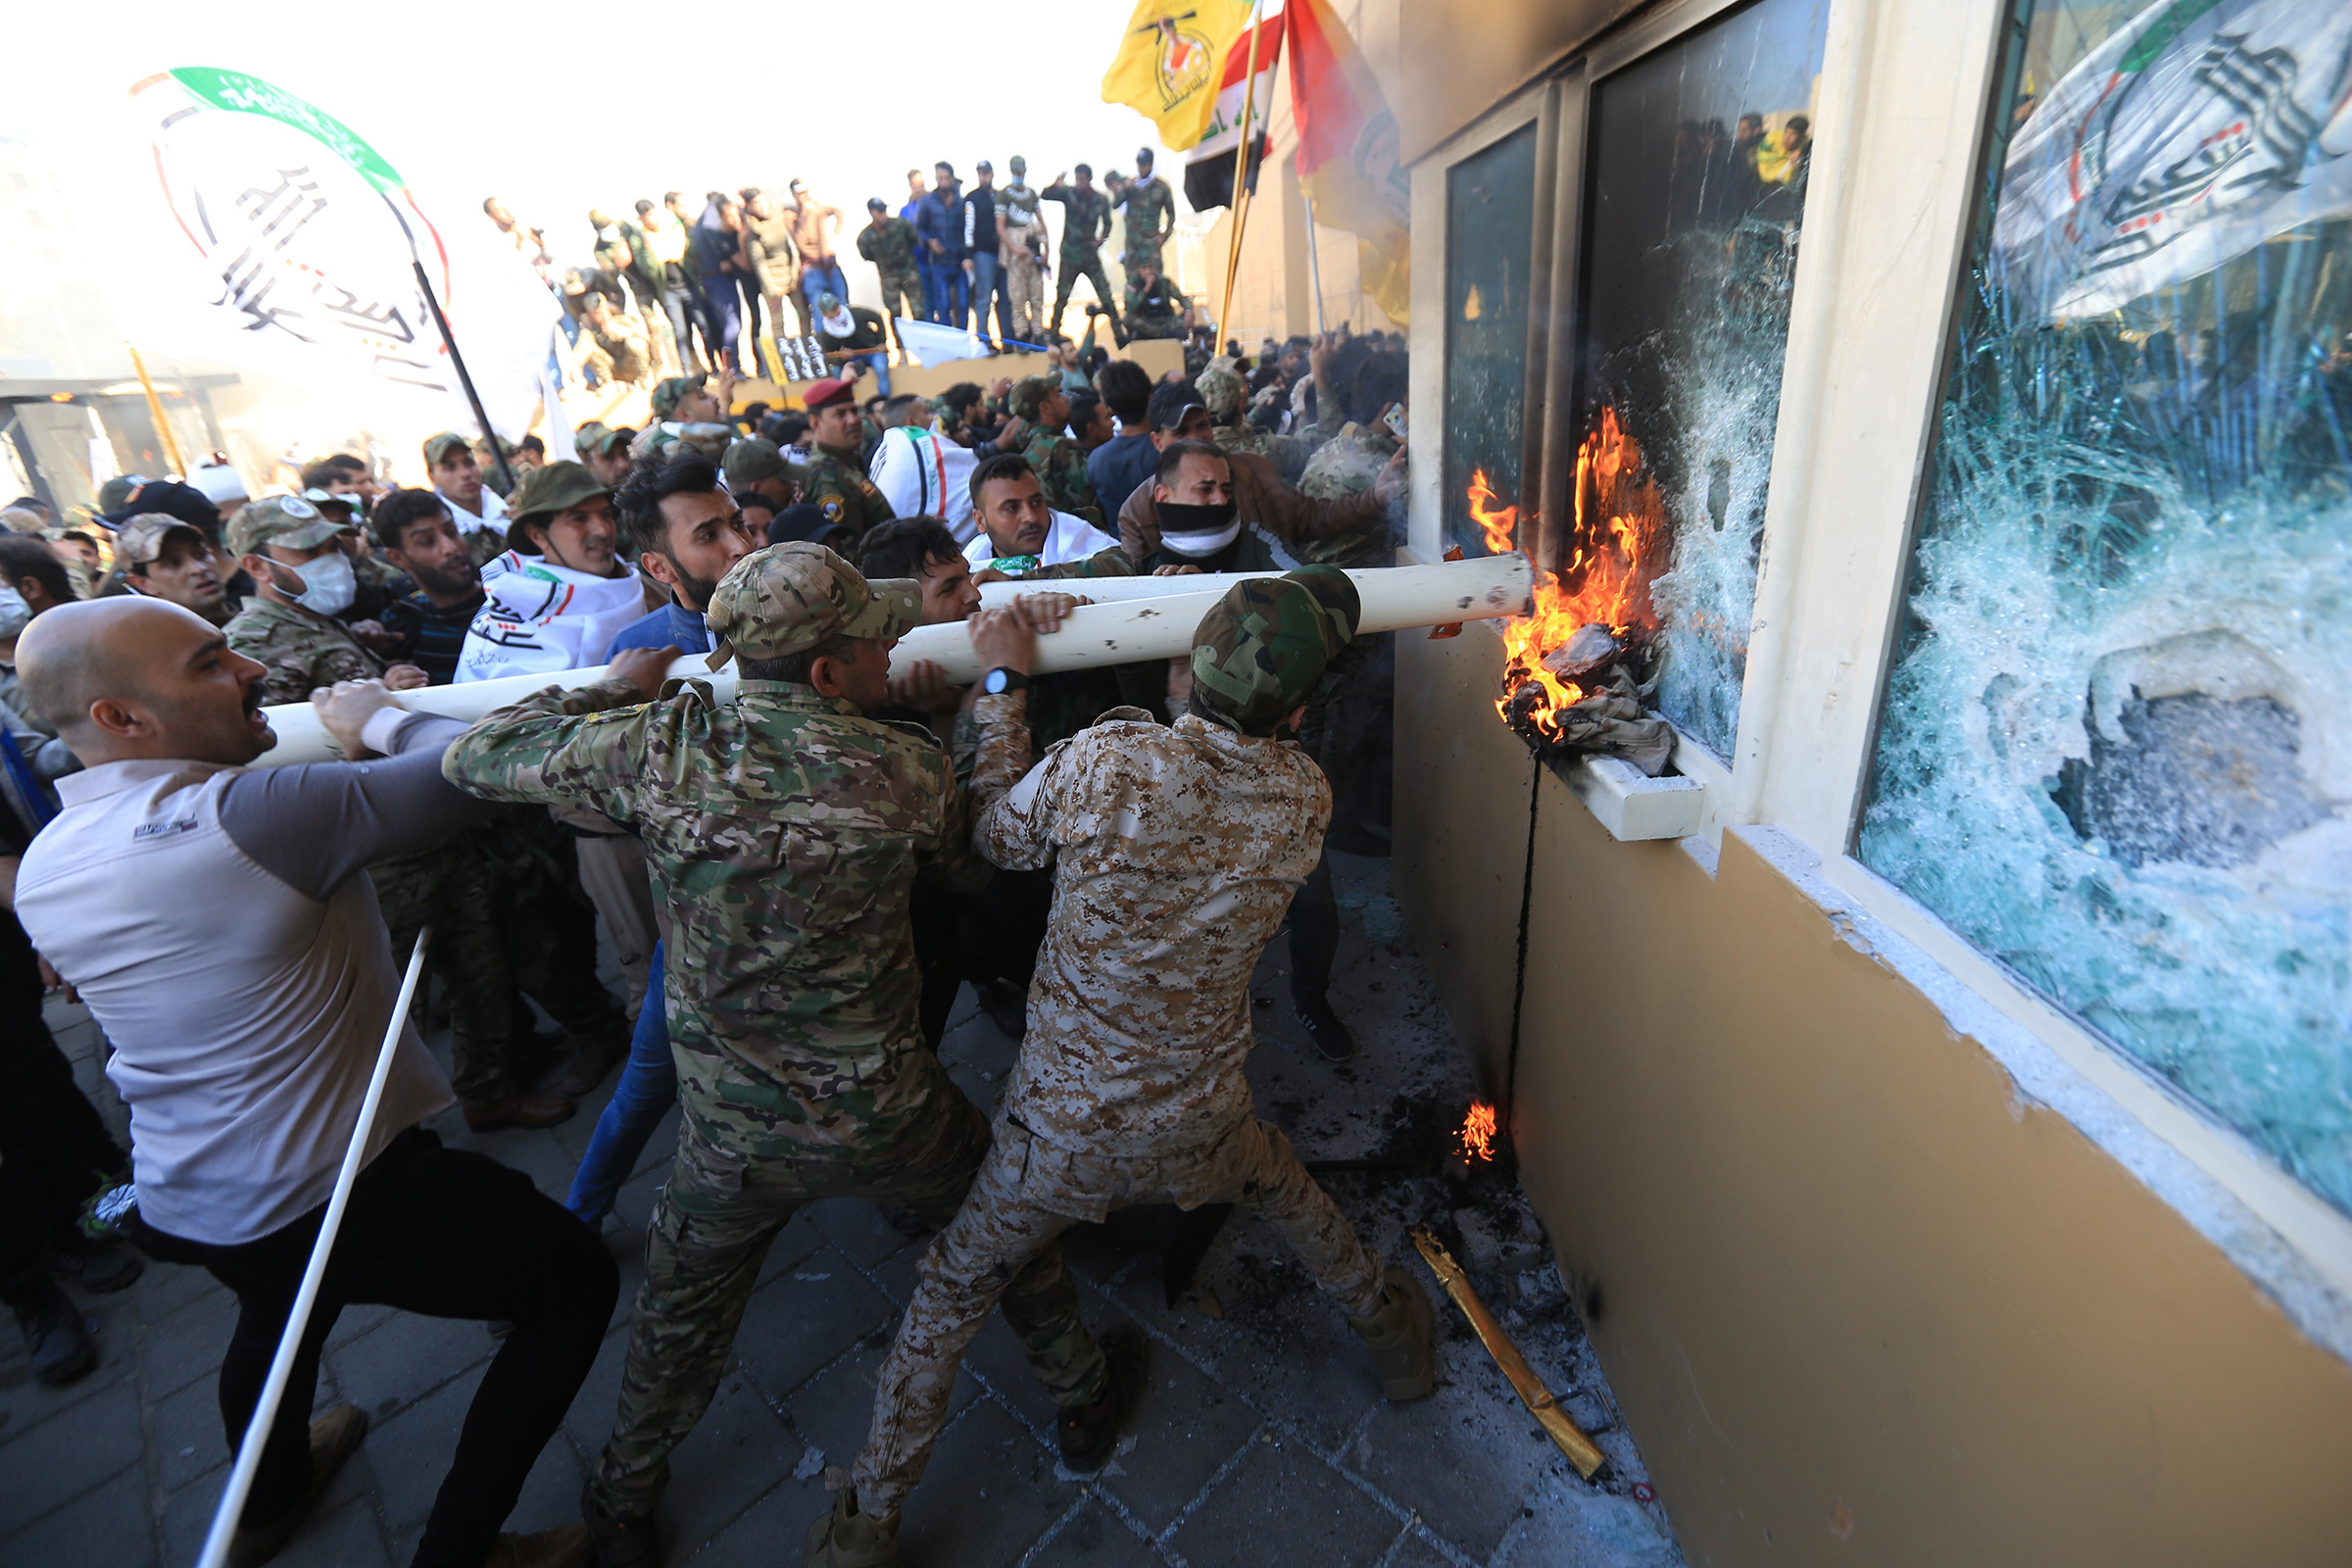 Iraqi protesters storm the U.S. embassy in Baghdad on Dec. 31, 2019.